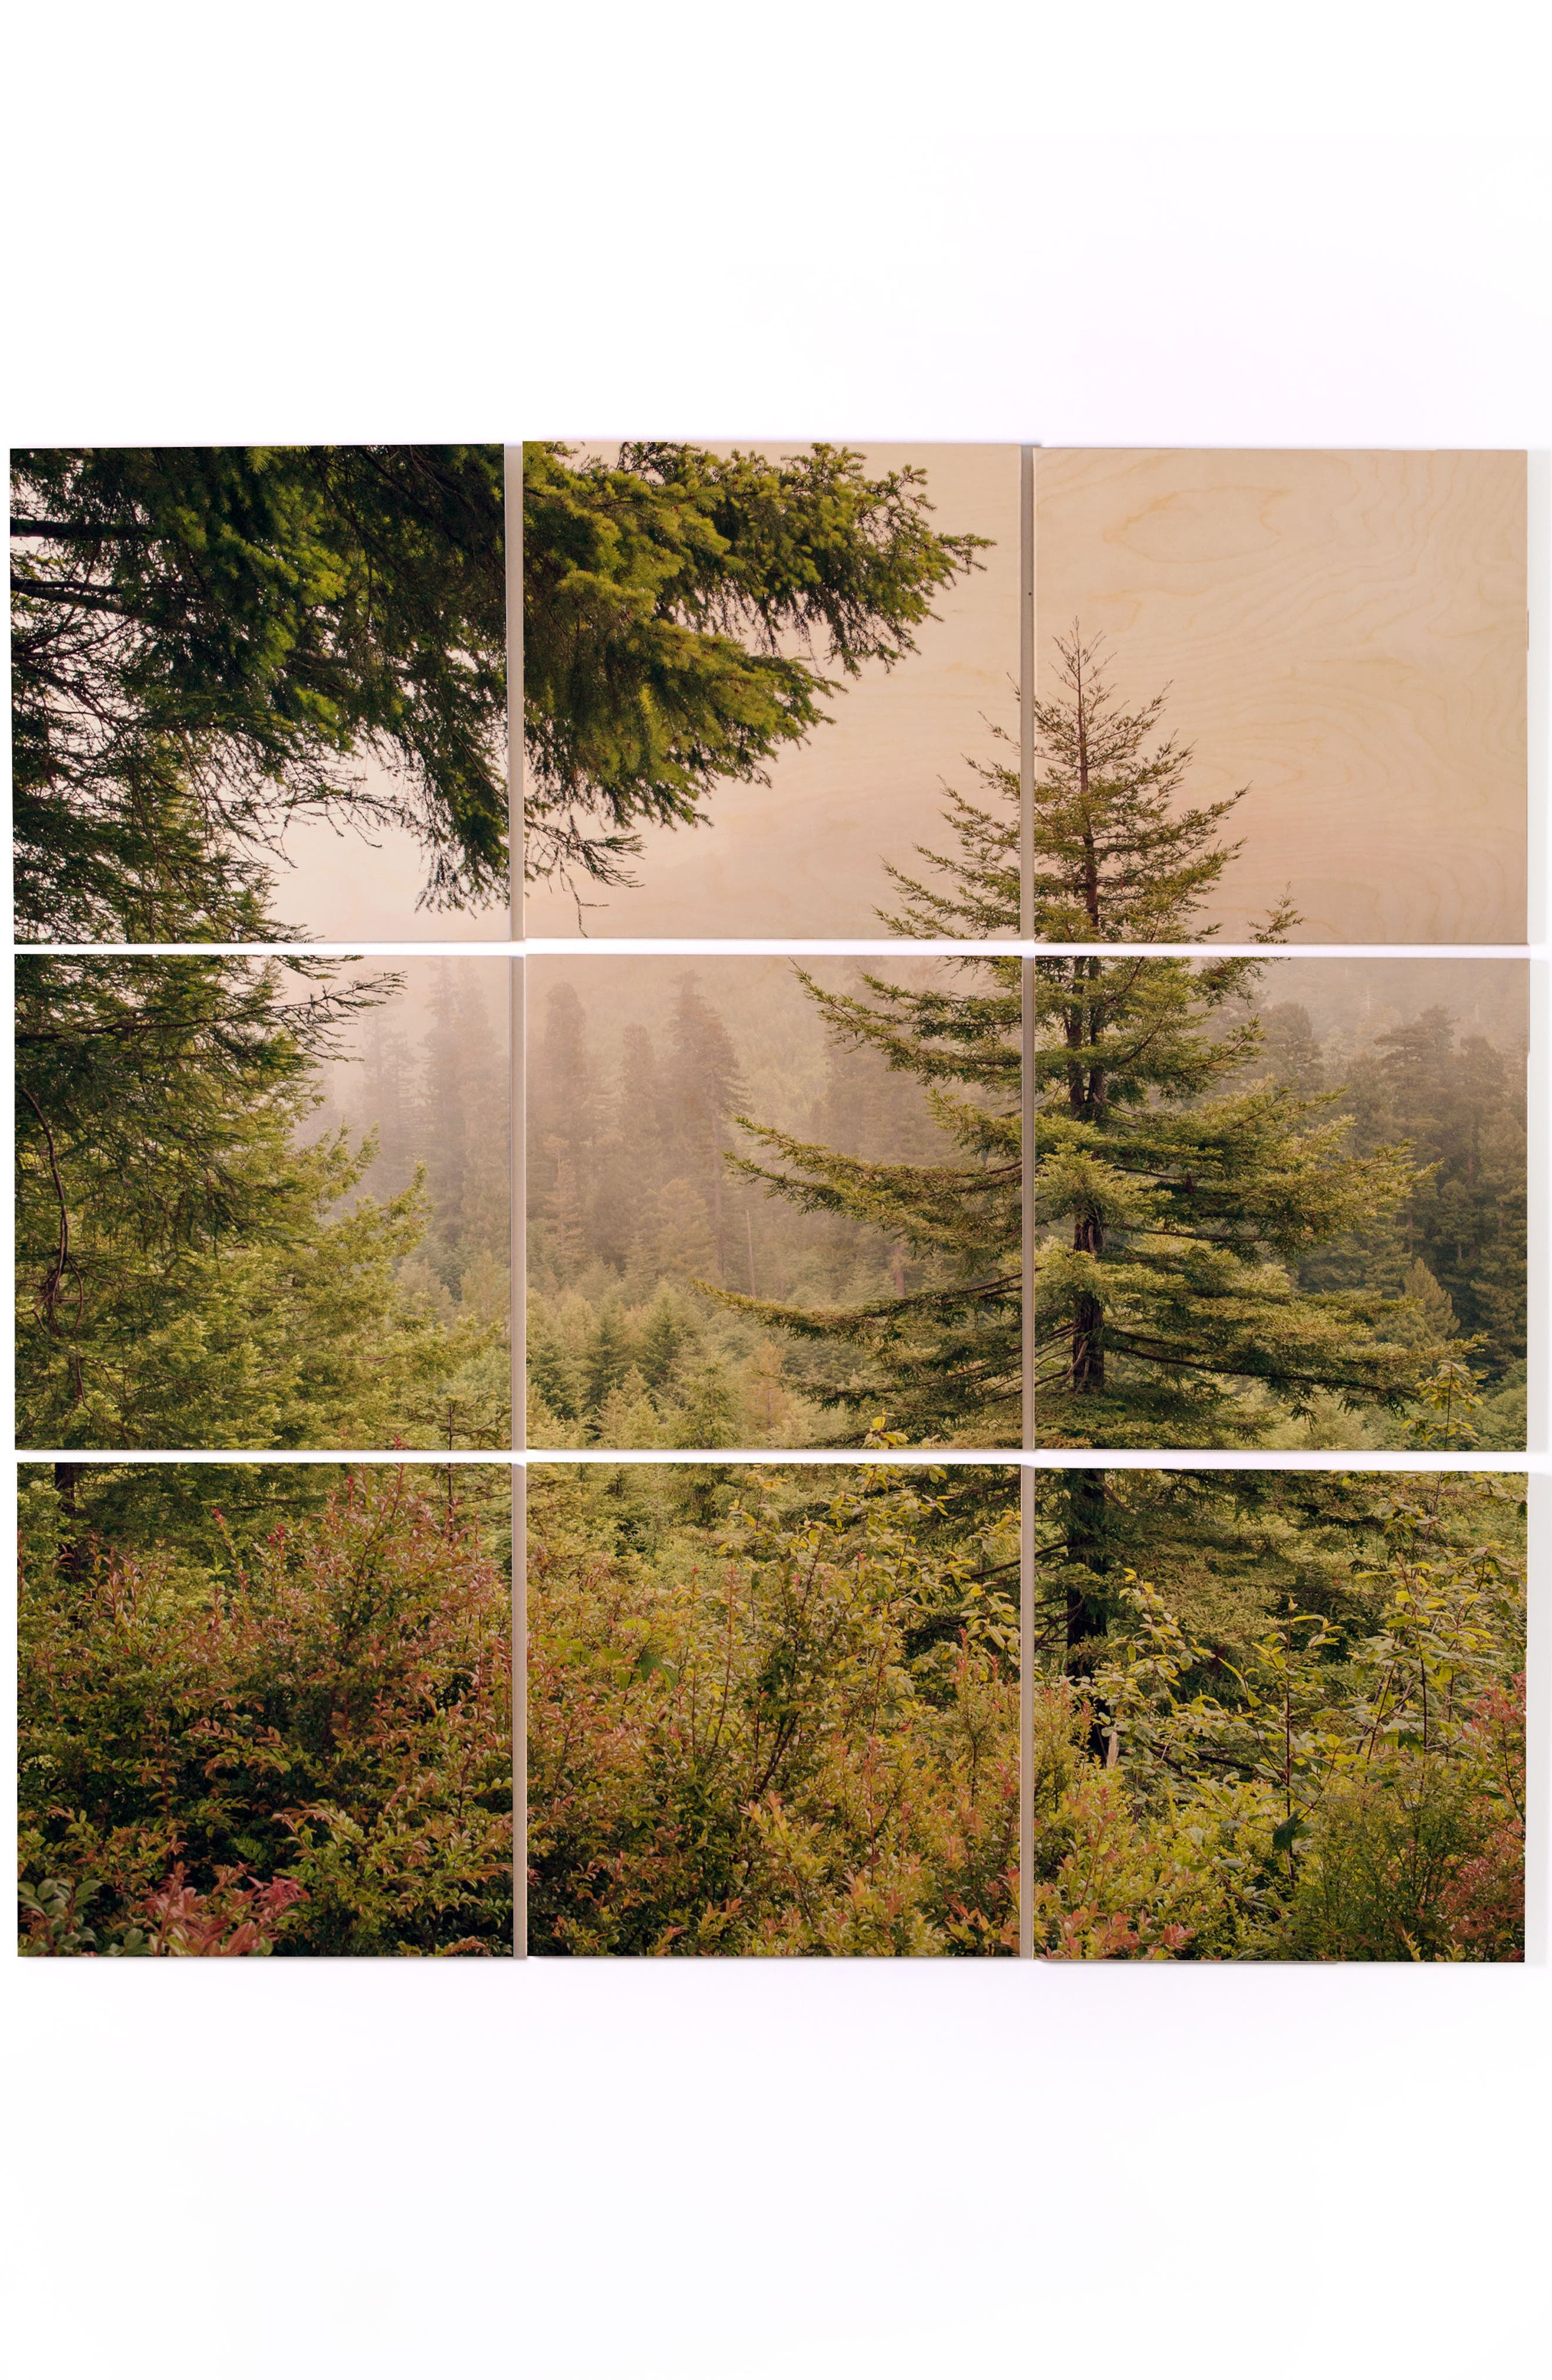 Deny Designs Into the Mist 9-Piece Wood Wall Mural